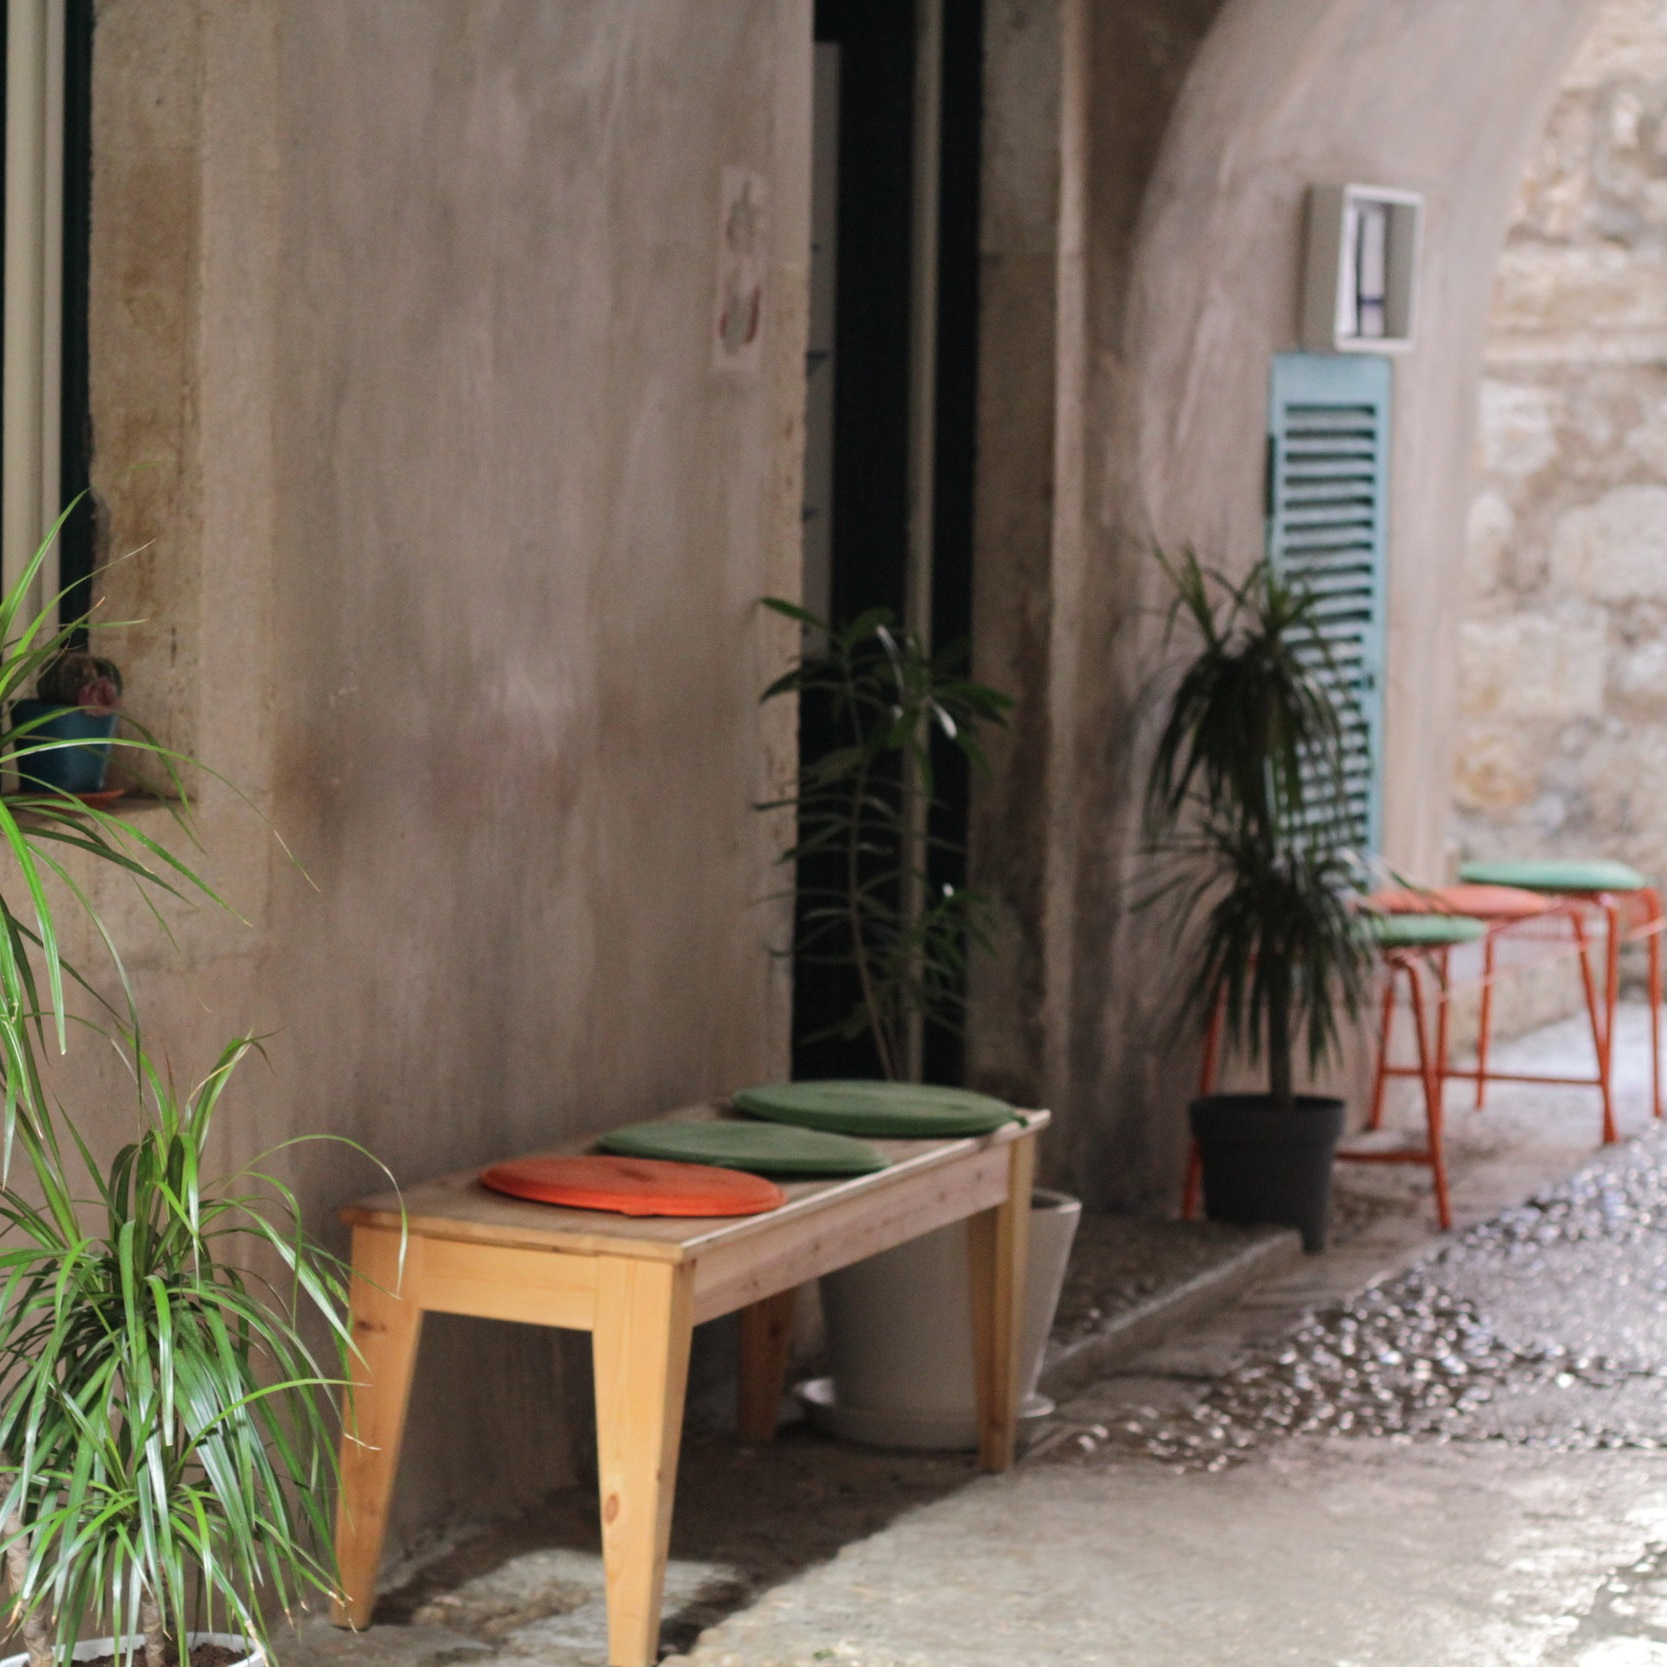 Cogito shop / dubrovnik old town -